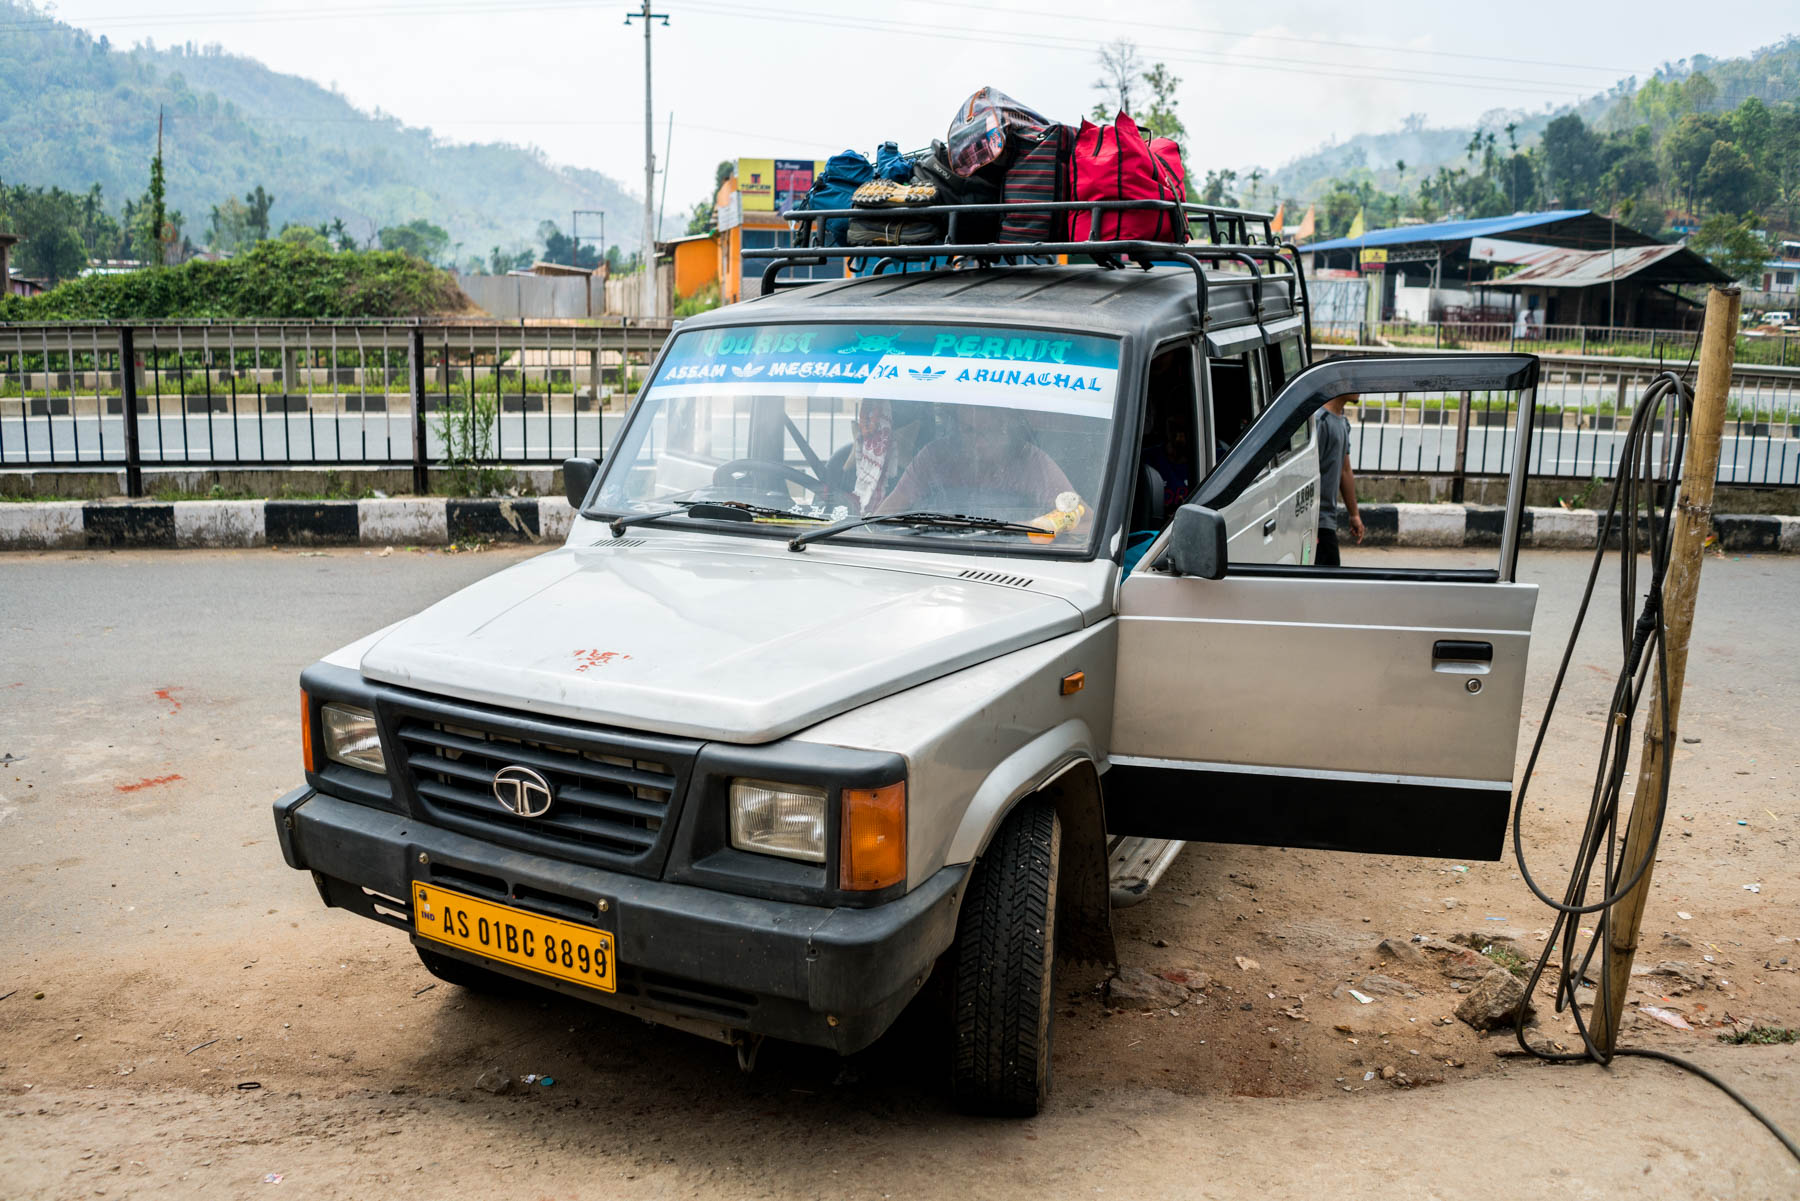 How to get from Guwahati to Shillong and Cherrapunjee - A shared Sumo at a snack stop - Lost With Purpose